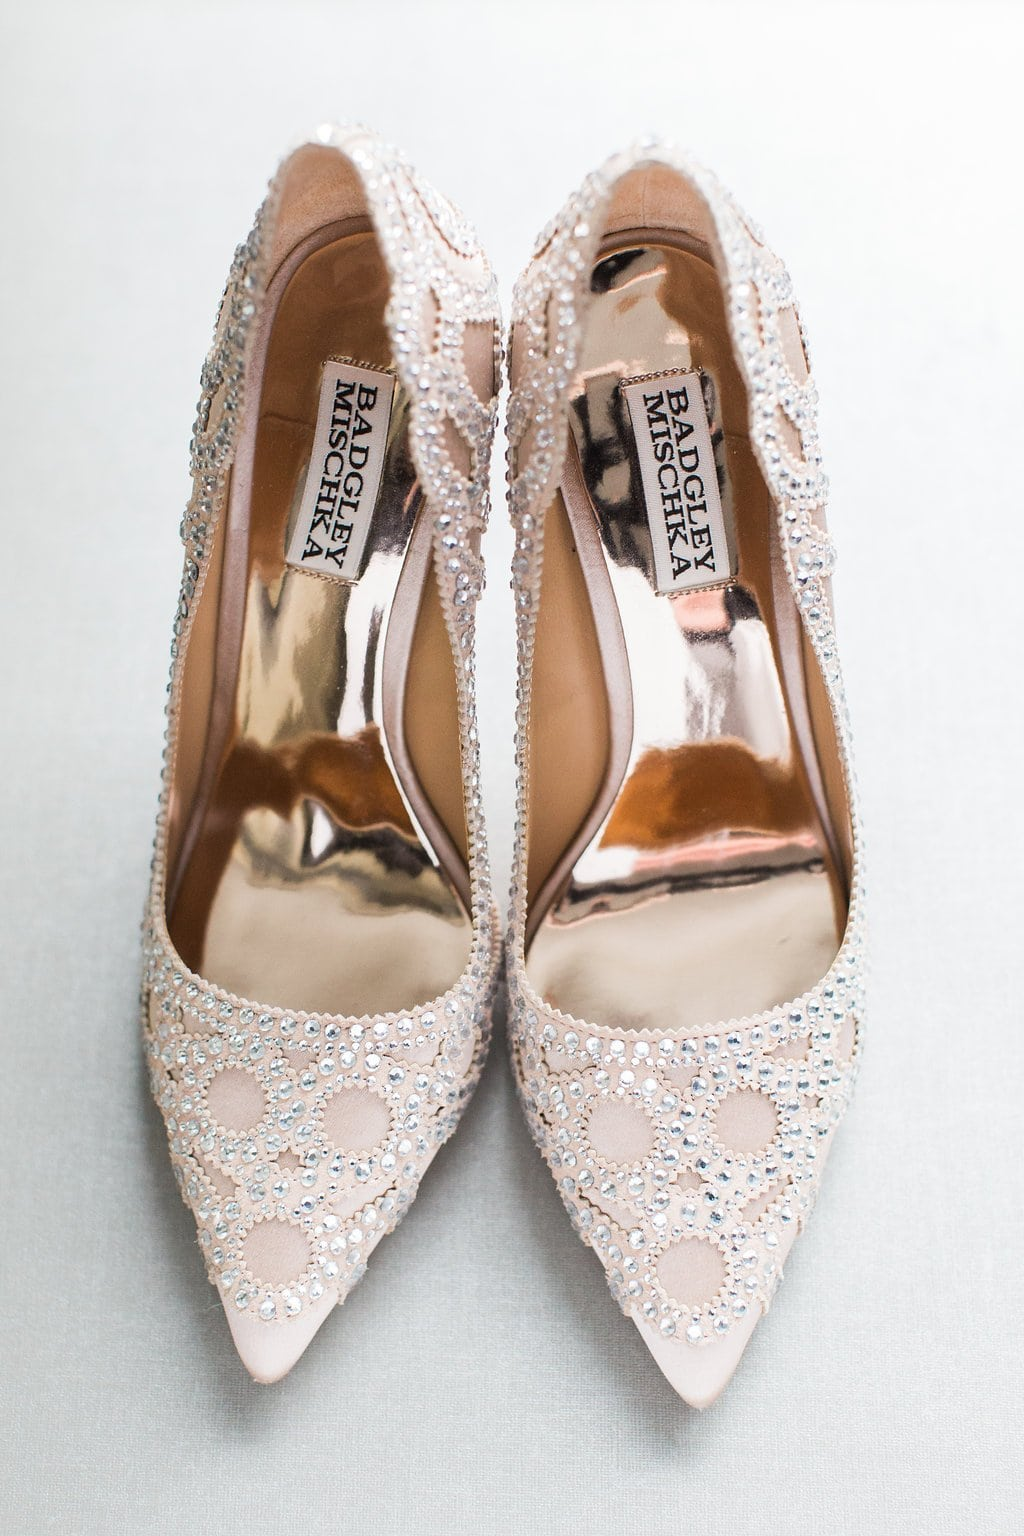 Badgley Mischka bridal shoes photo a the Hyatt place hotel in southside - J Verno Studios Winter Wedding